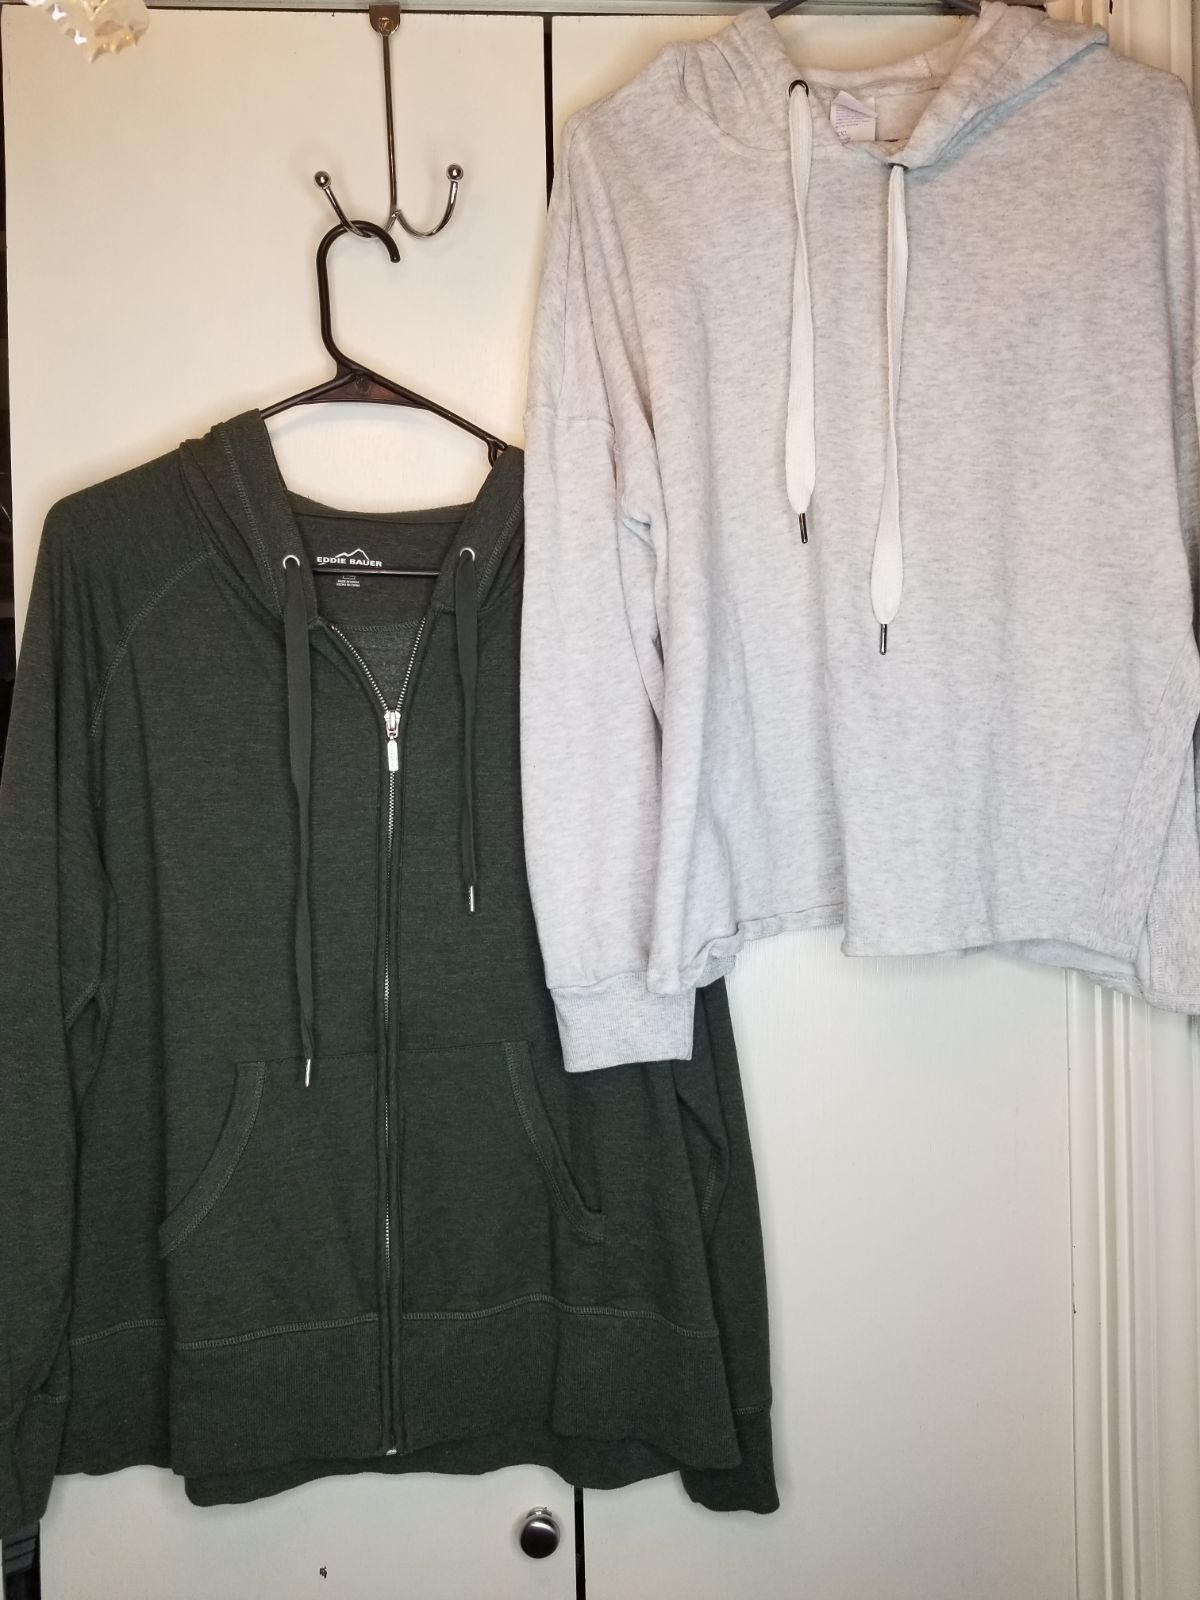 2 Hoodies - Gray & Green